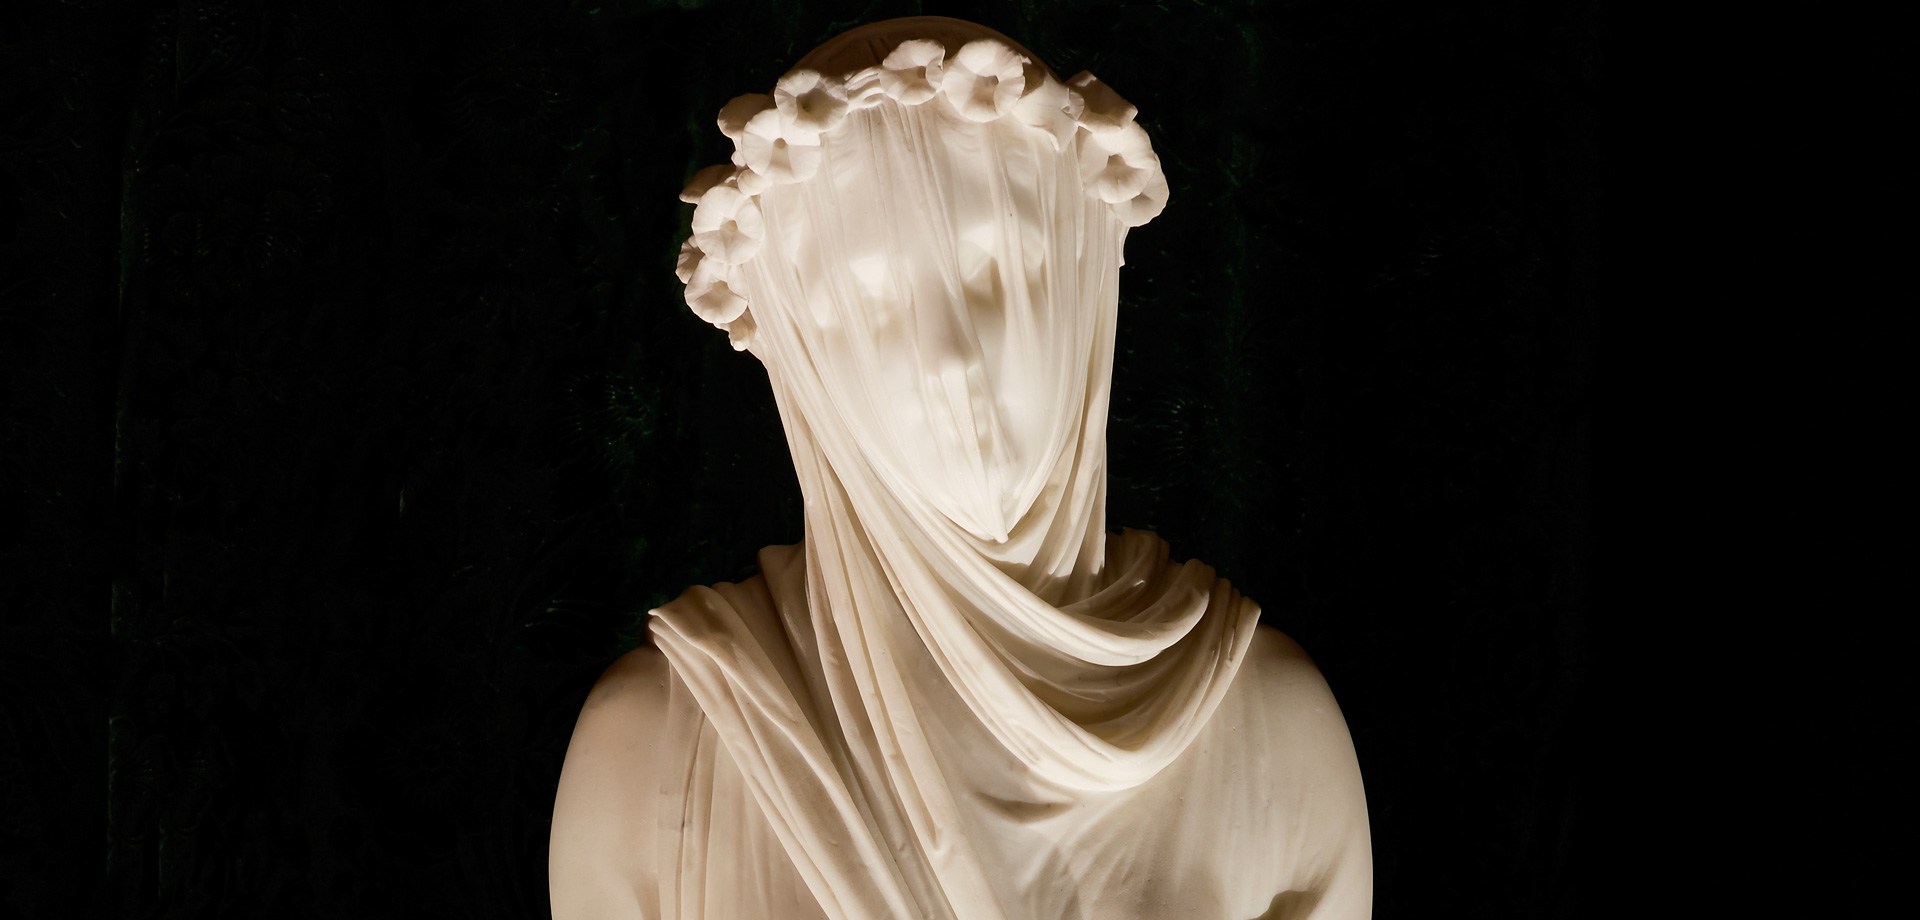 A Veiled Vestal Virgin